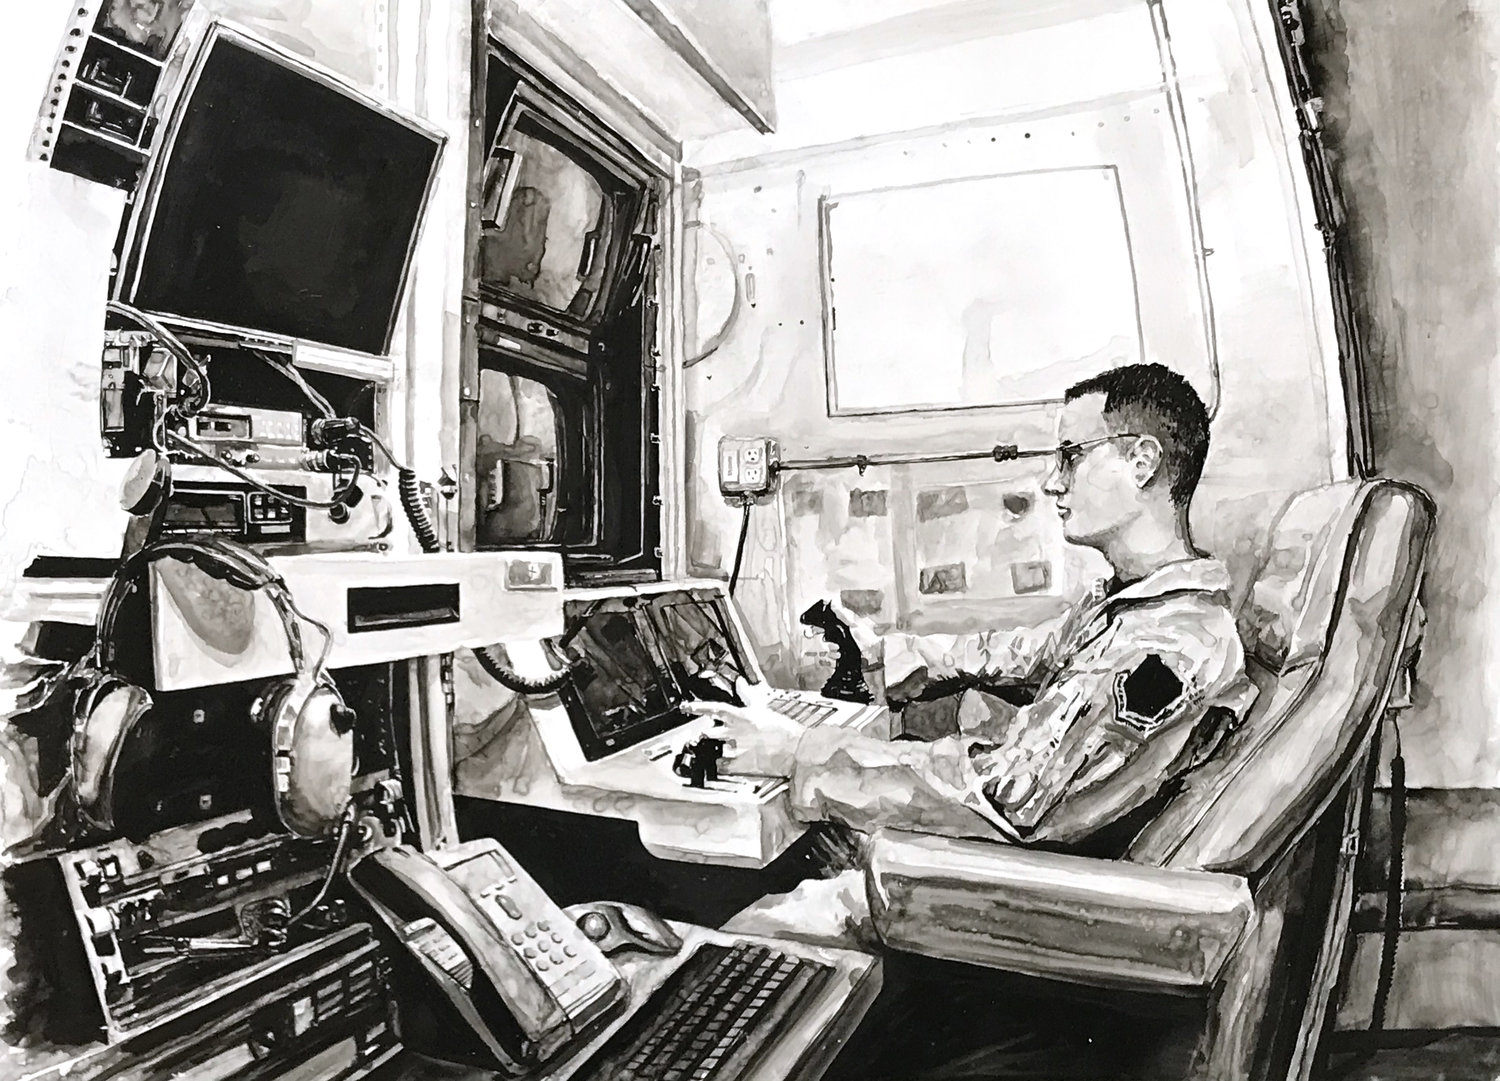 2013 (Drone Operator) ink on Yupo paper 20 x 28 inches JKO 094G